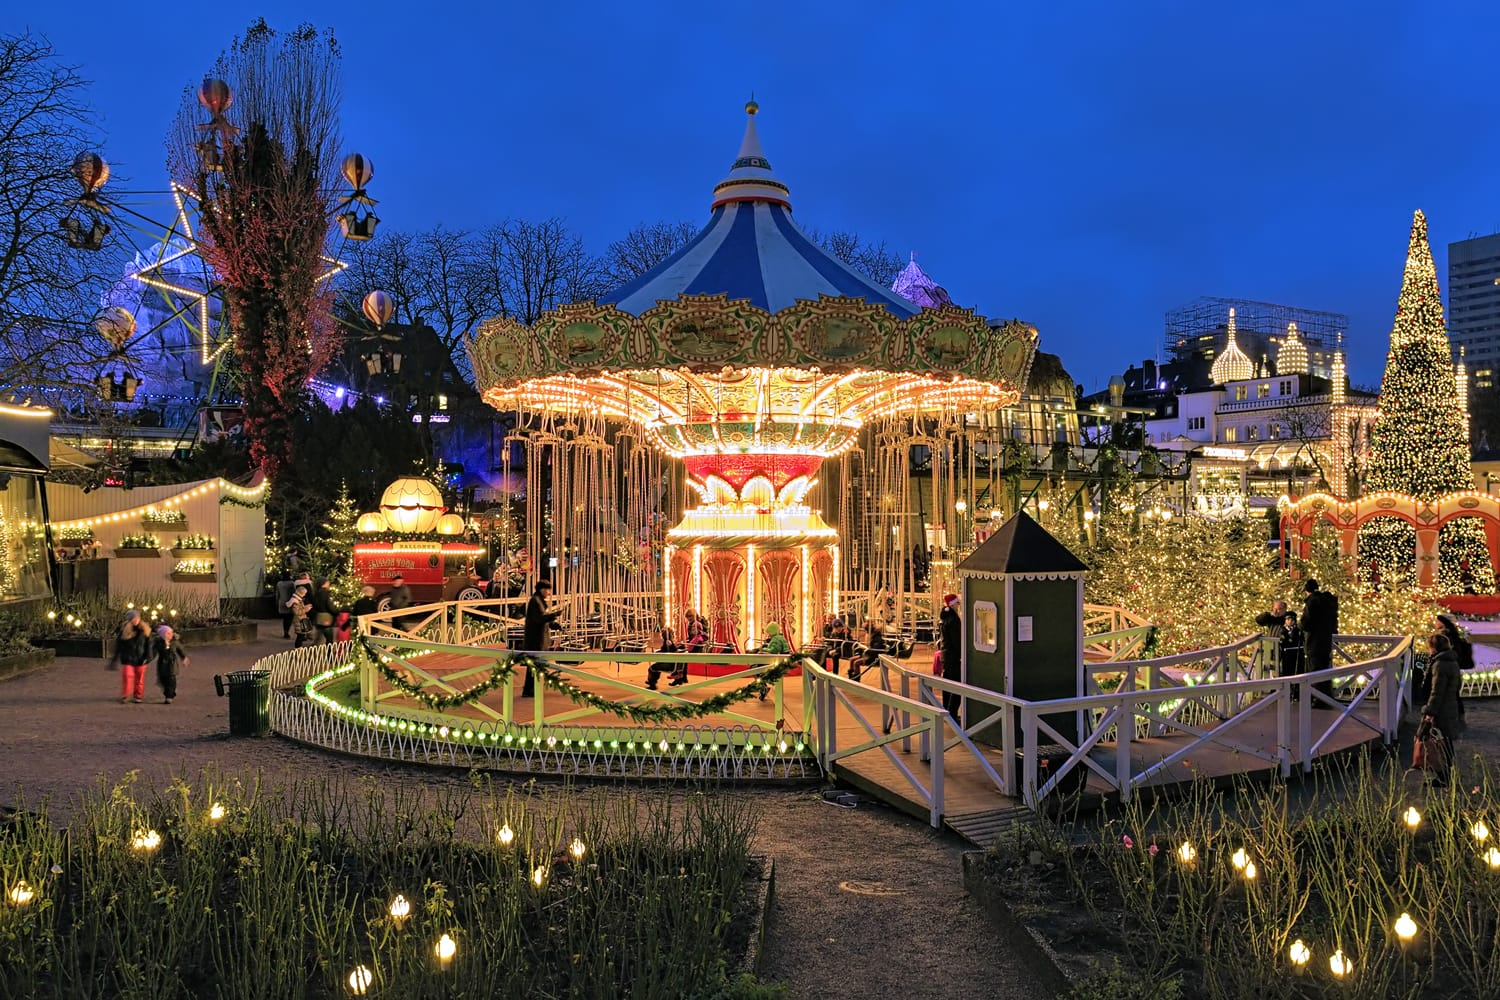 The carousel and christmas illumination in Tivoli Gardens, a famous amusement park and pleasure garden in Copenhagen, Denmark